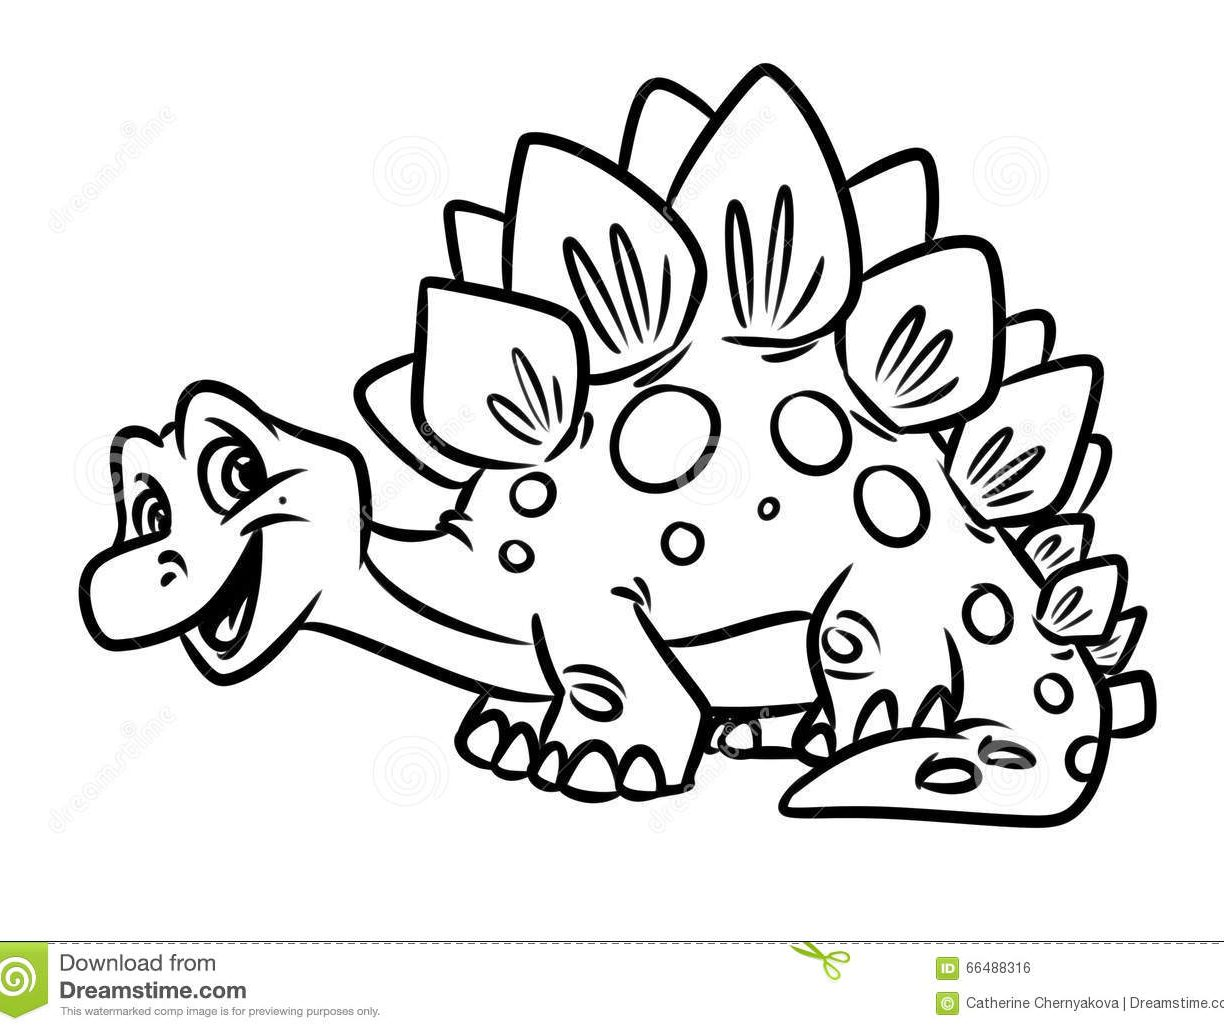 1224x1031 Coloring Pages Dinosaurs Stegosaurus And Other Dino Page General